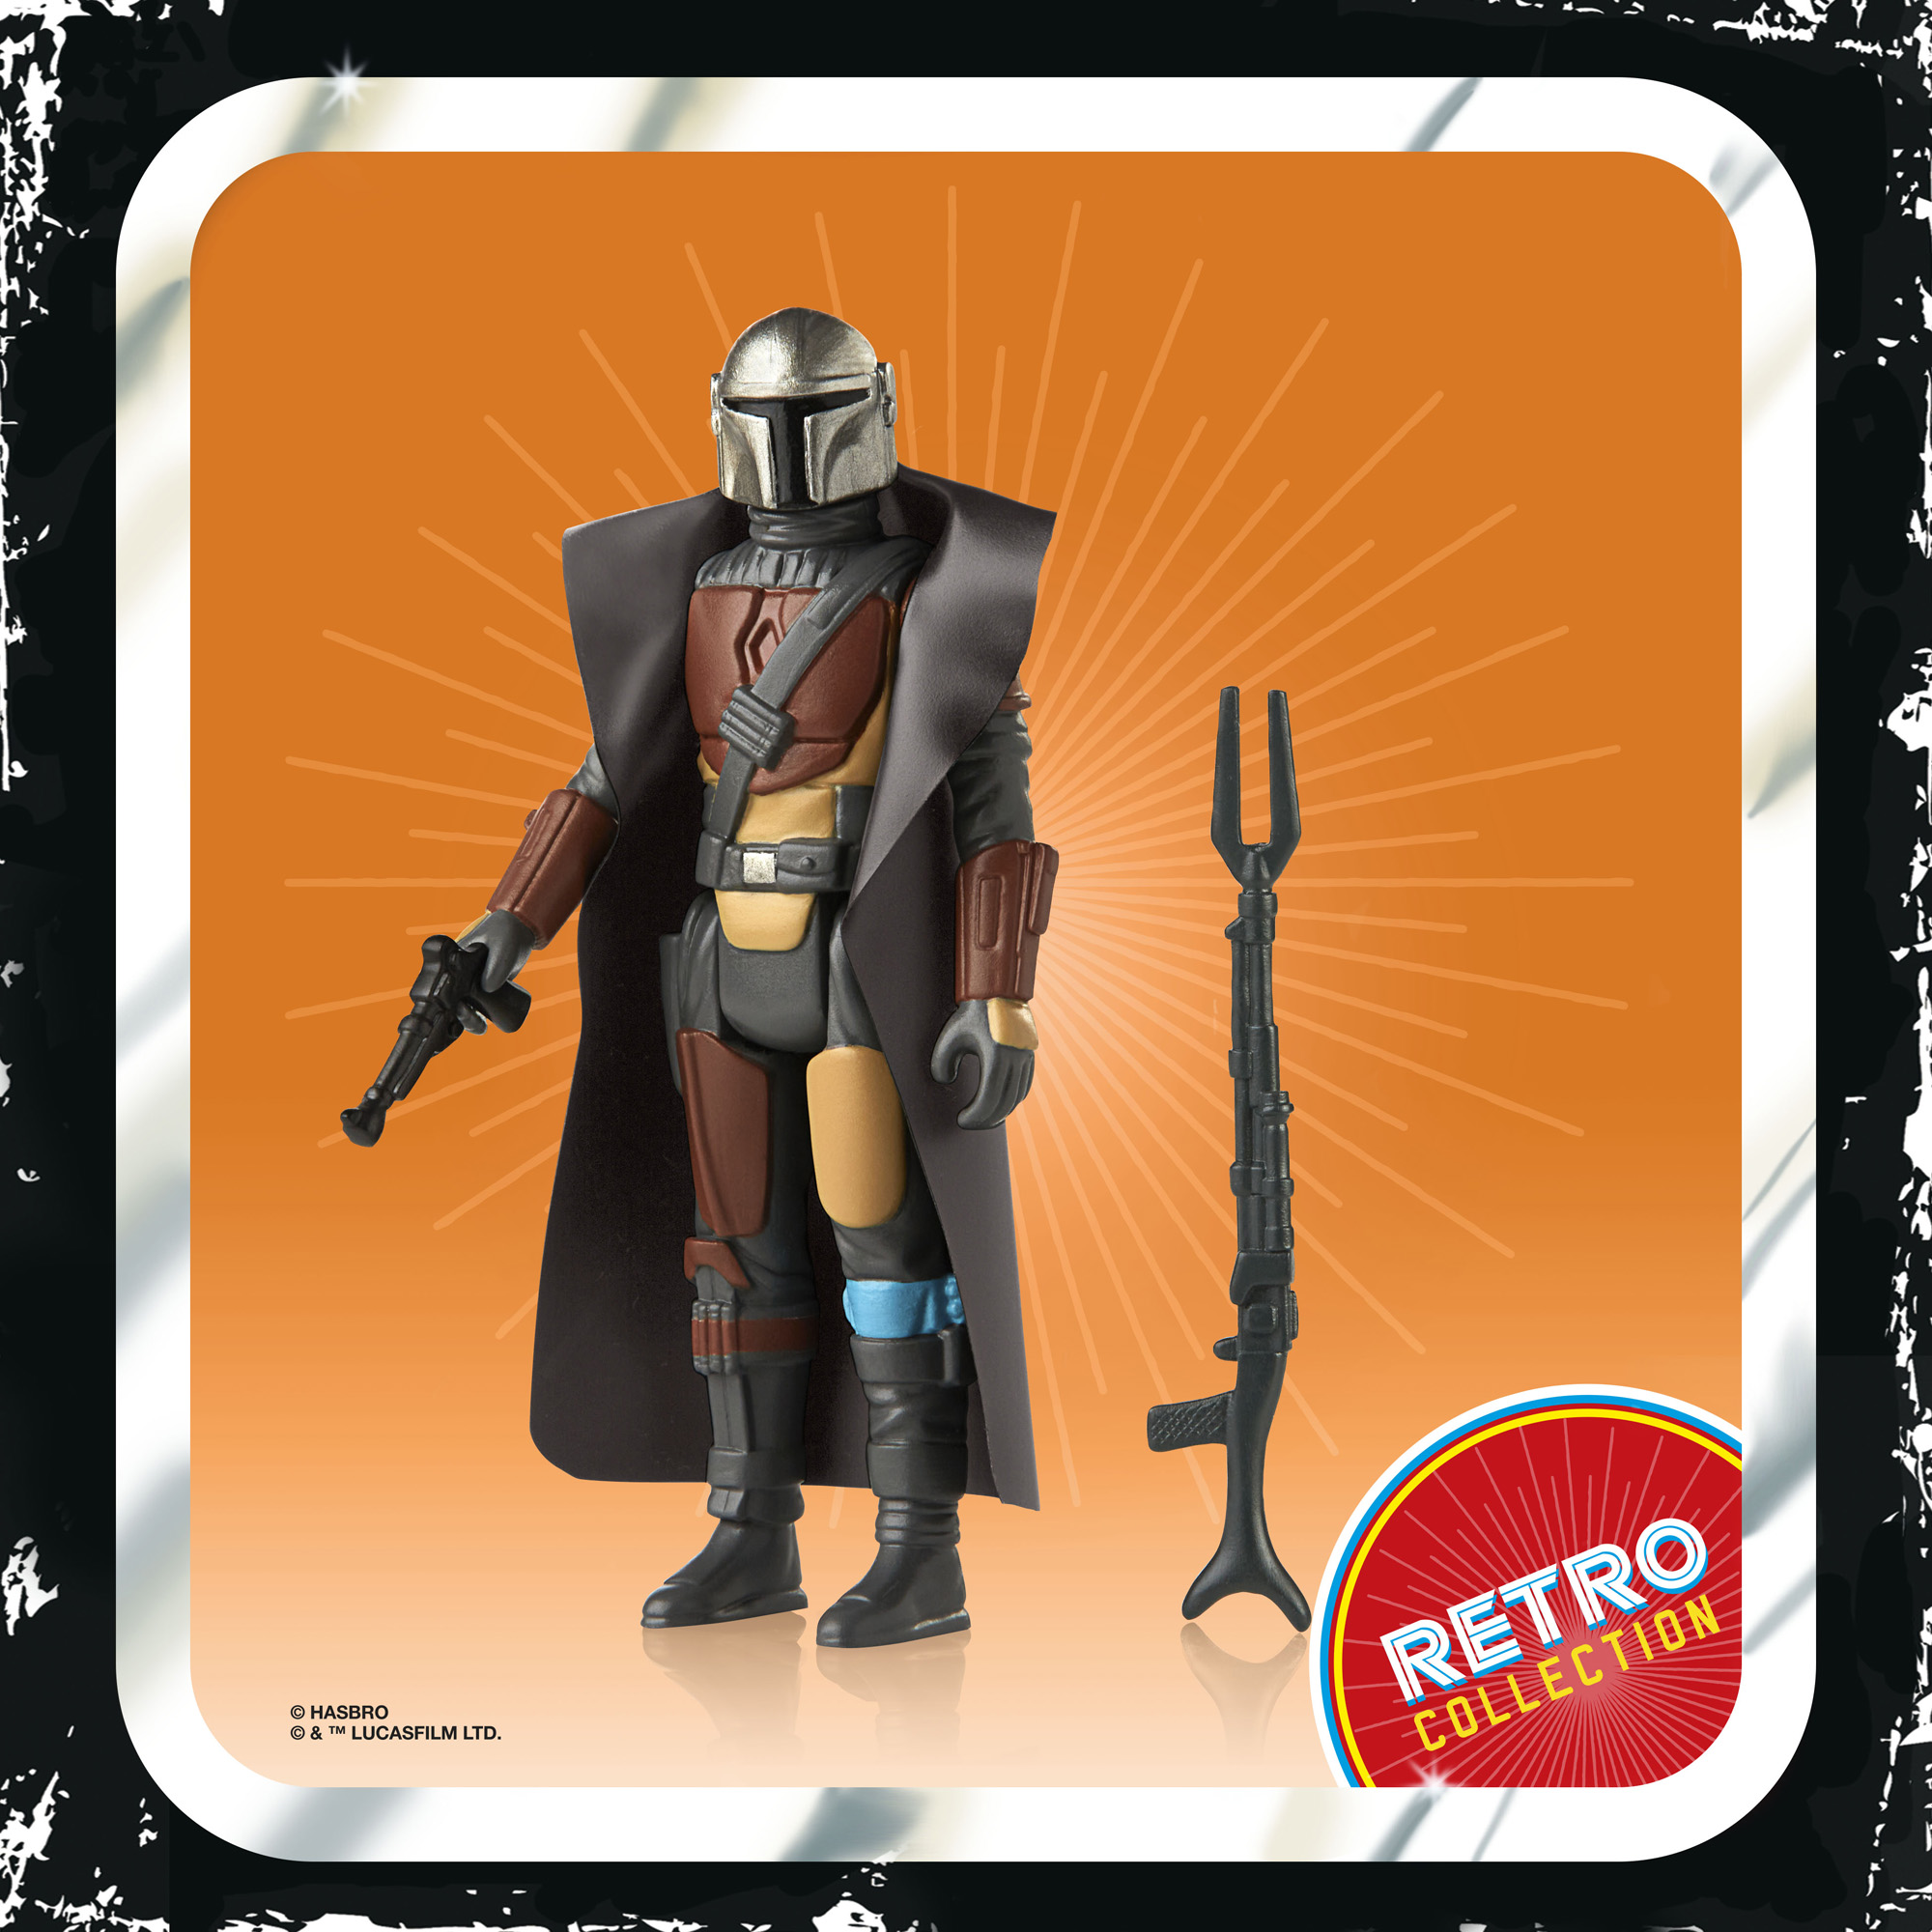 Star Wars The Mandalorian The Retro Collection The Mandalorian Action Figure F20195L00 5010993809073